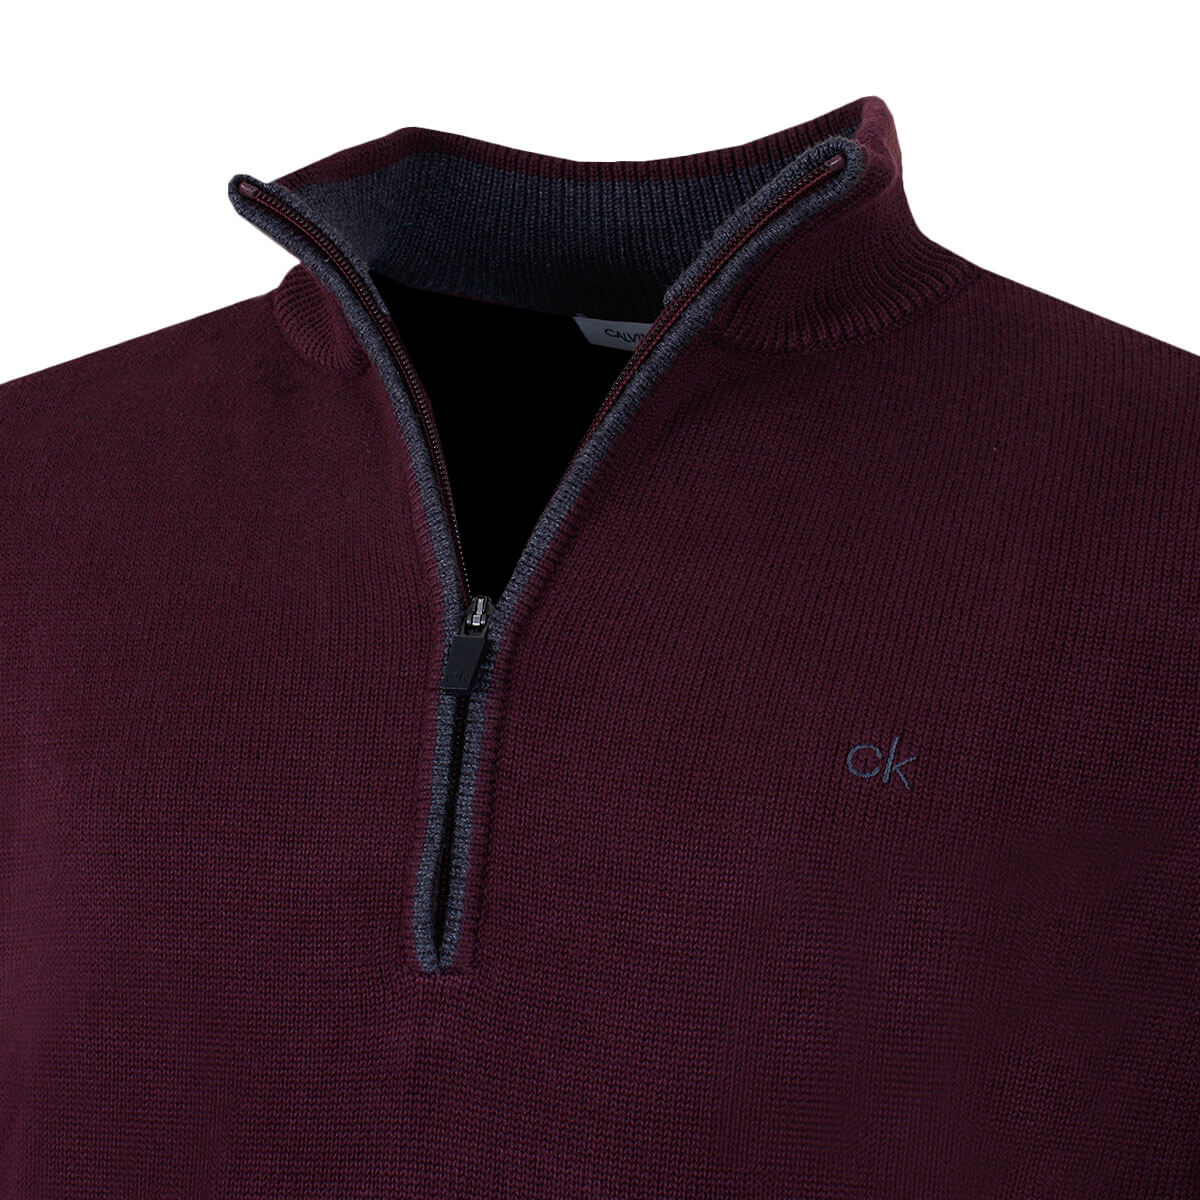 Calvin-Klein-Golf-Mens-2019-Chunky-Cotton-1-2-Zip-Golf-Top-Sweater-28-OFF-RRP thumbnail 29